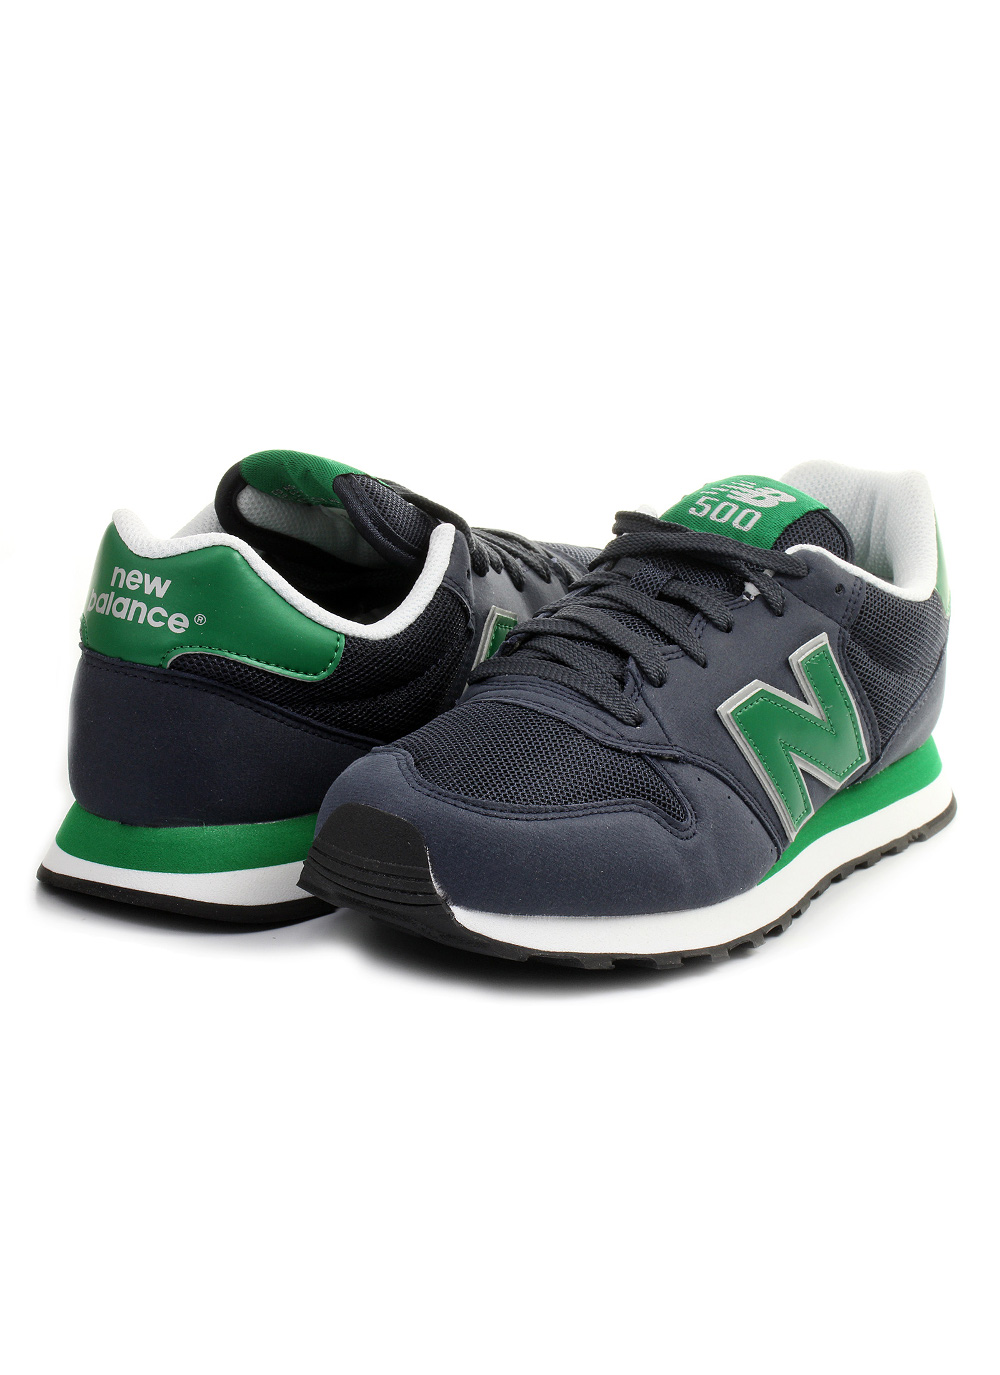 free shipping 0aca8 49135 New-Balance-GM-500-Sneakers-Shoes-Boots-Sport-